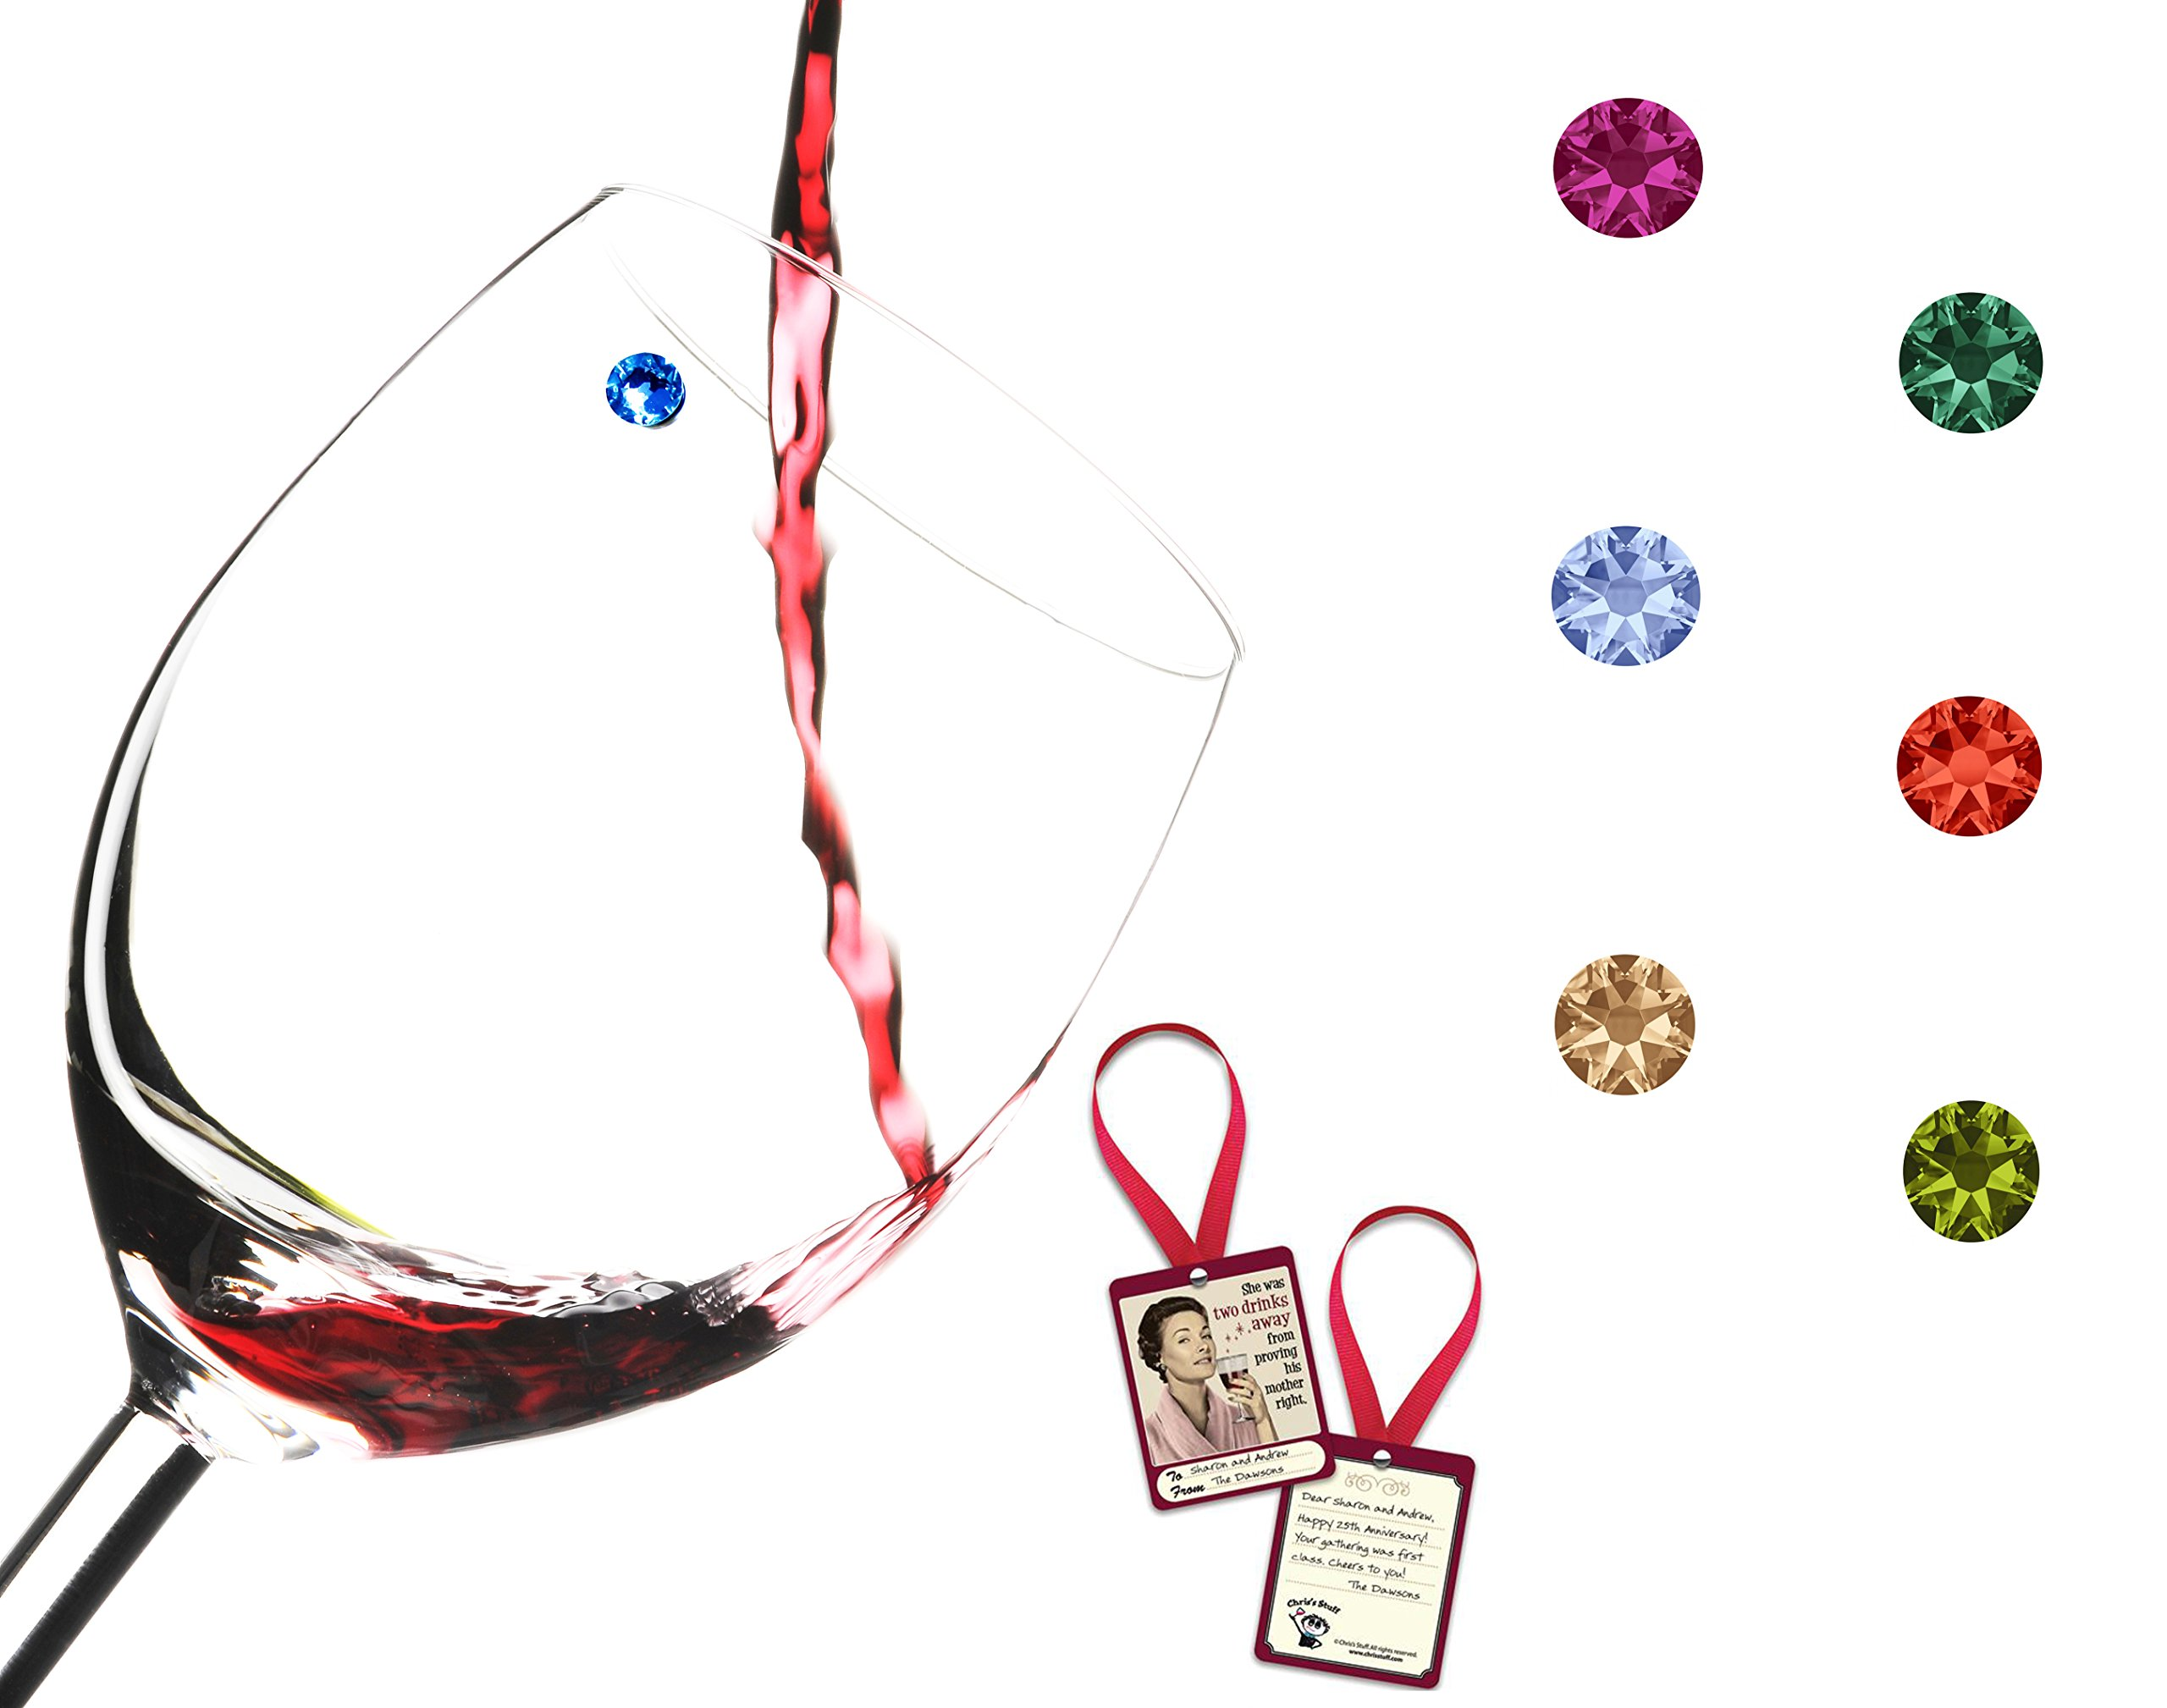 Swarovski Crystal Magnetic Wine Glass Charms - Set of 6 Fall Colors - Works with Any Type of Glass - Great Party or Gift Idea - Bottle Tag Included